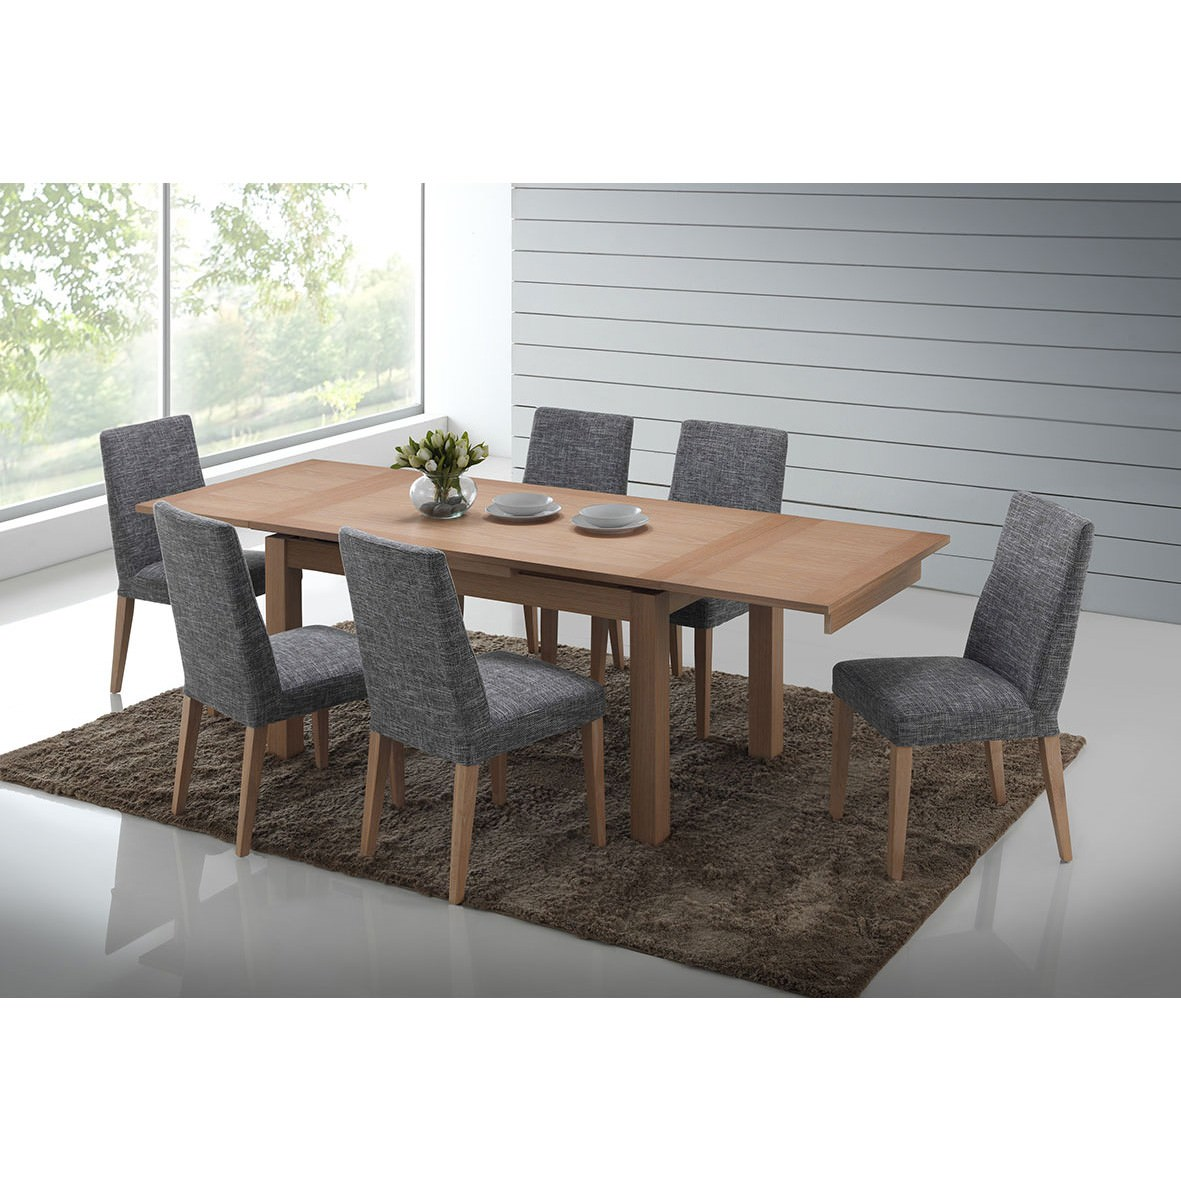 Yaron 7 Piece American Oak Timber Extensible Dining Table Set, 150cm-250cm, Grey Chairs